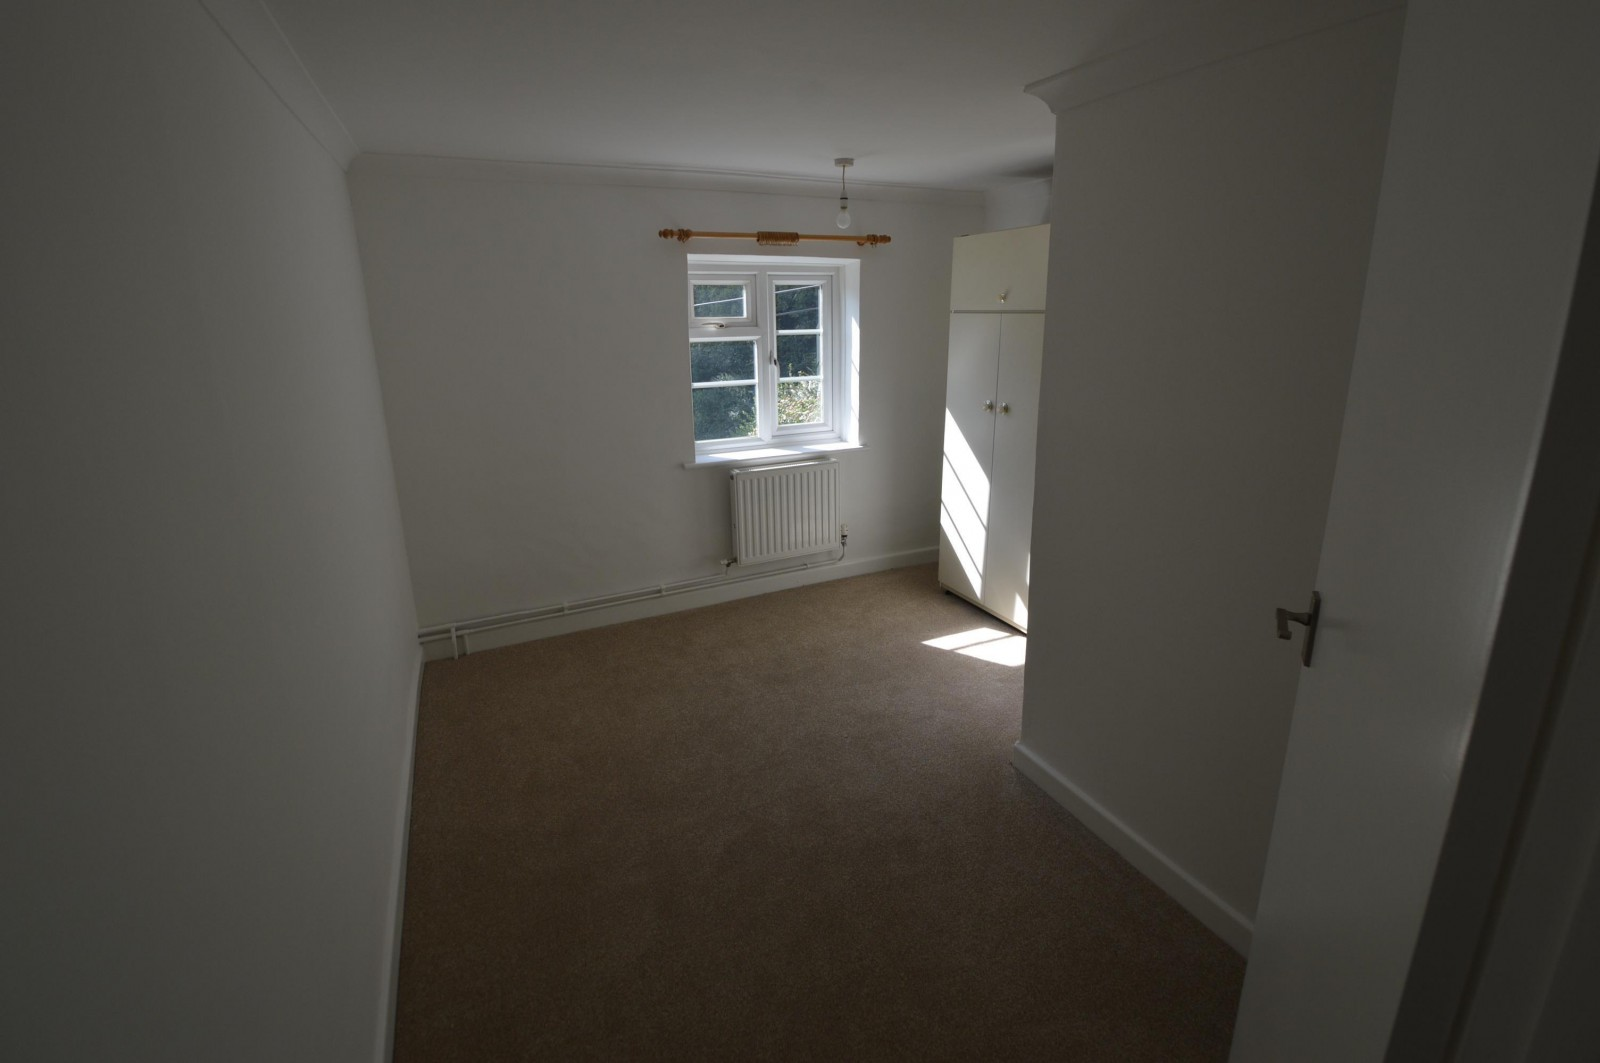 Bedroom 3 Property to let in West Meon